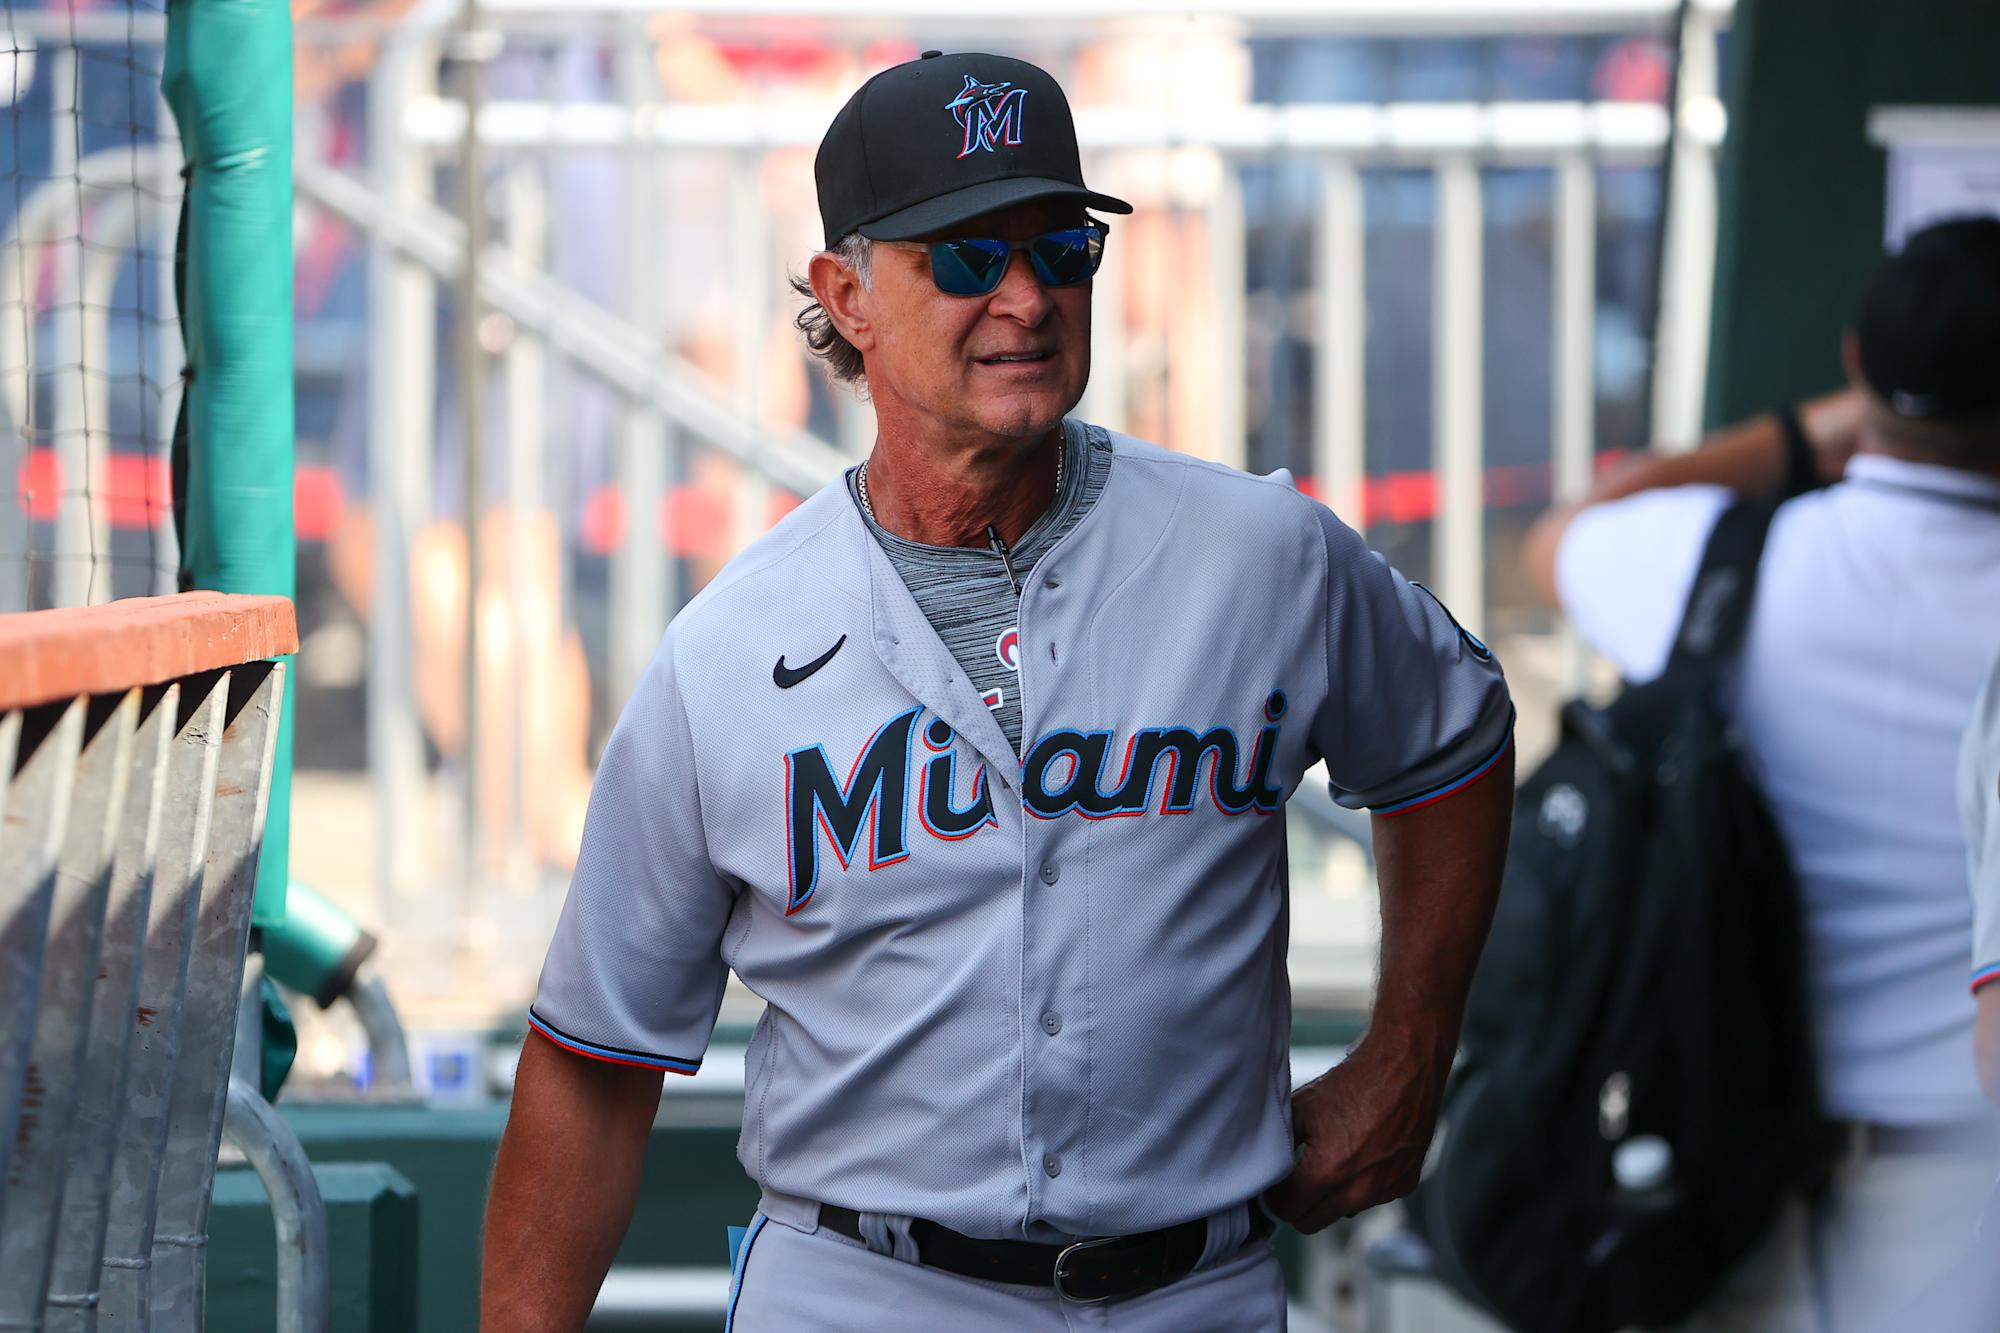 Marlins manager Don Mattingly returns after COVID-19 battle: 'I was glad I was vaccinated'